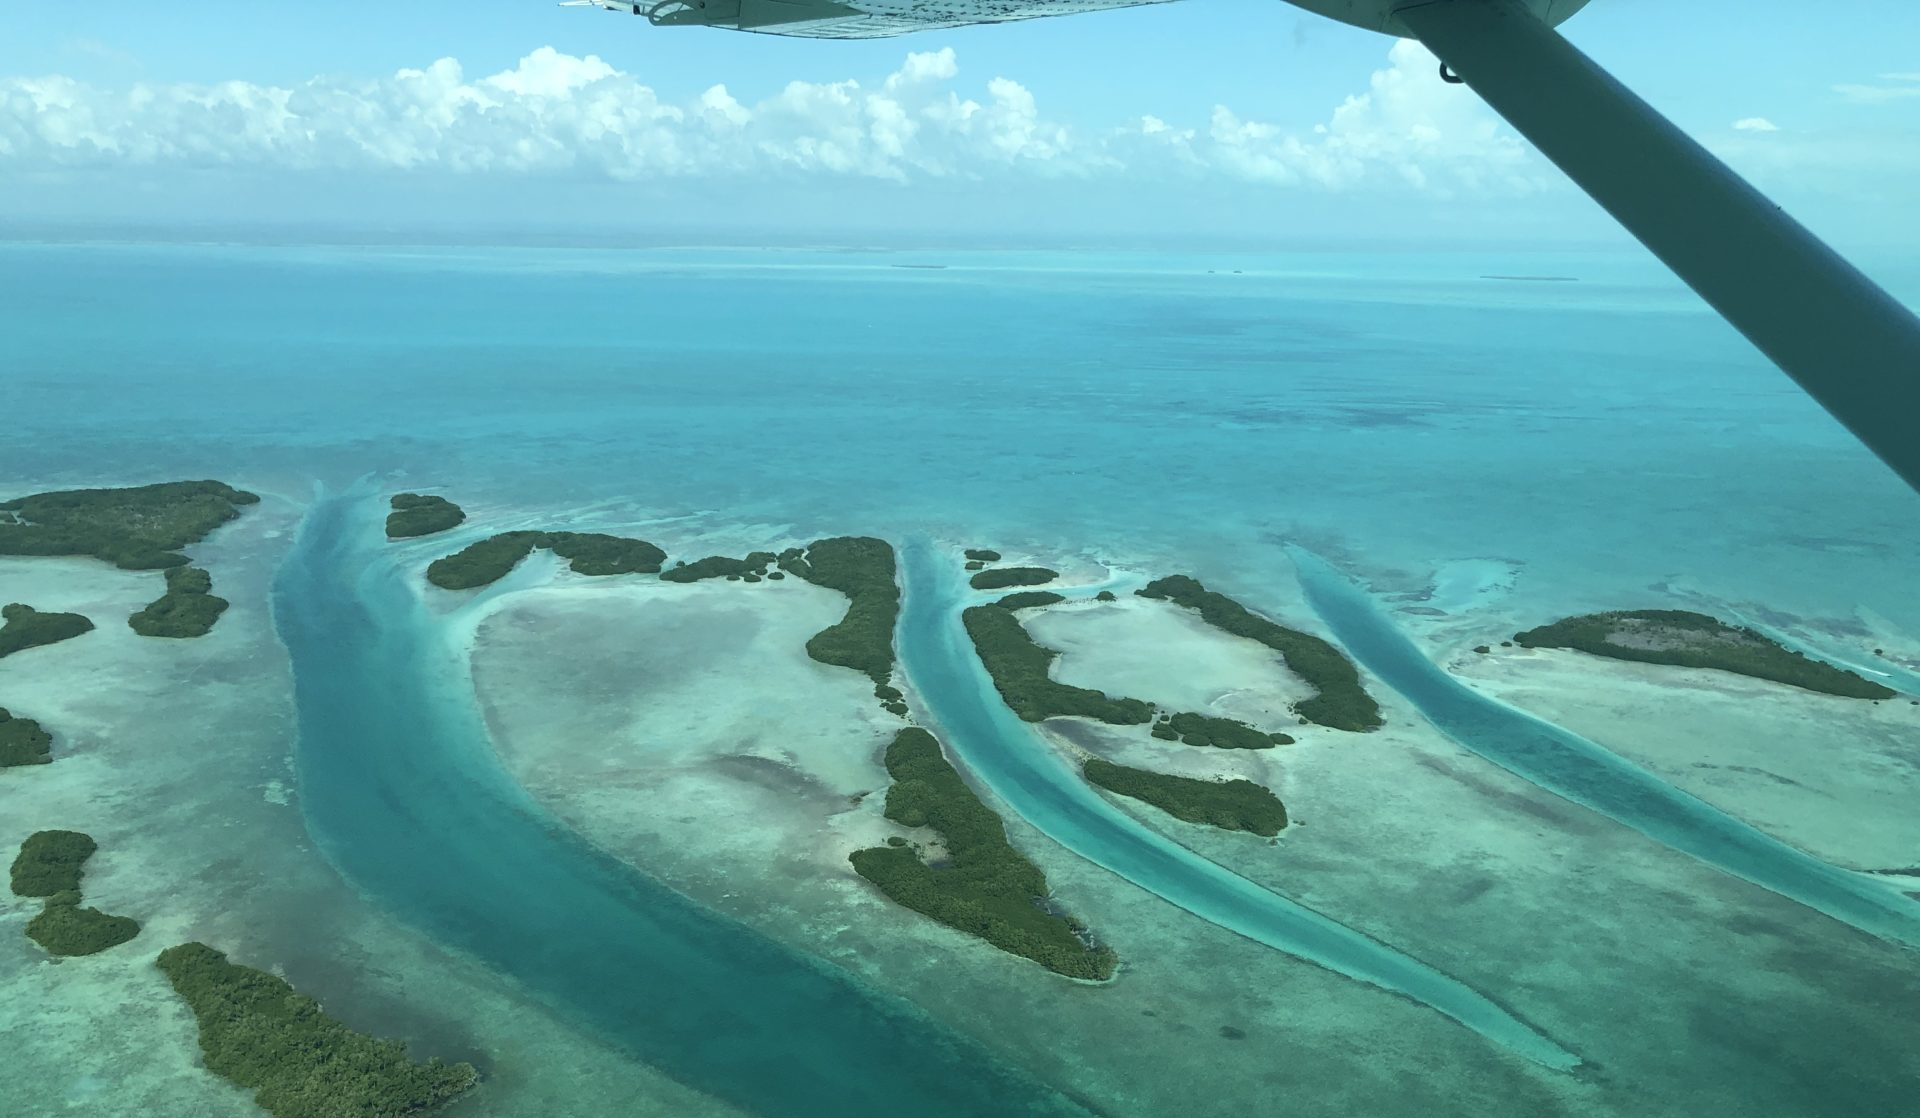 Lieblingsreisezielemaya Island Air Belize City To San Pedro View 1 E1552171602371